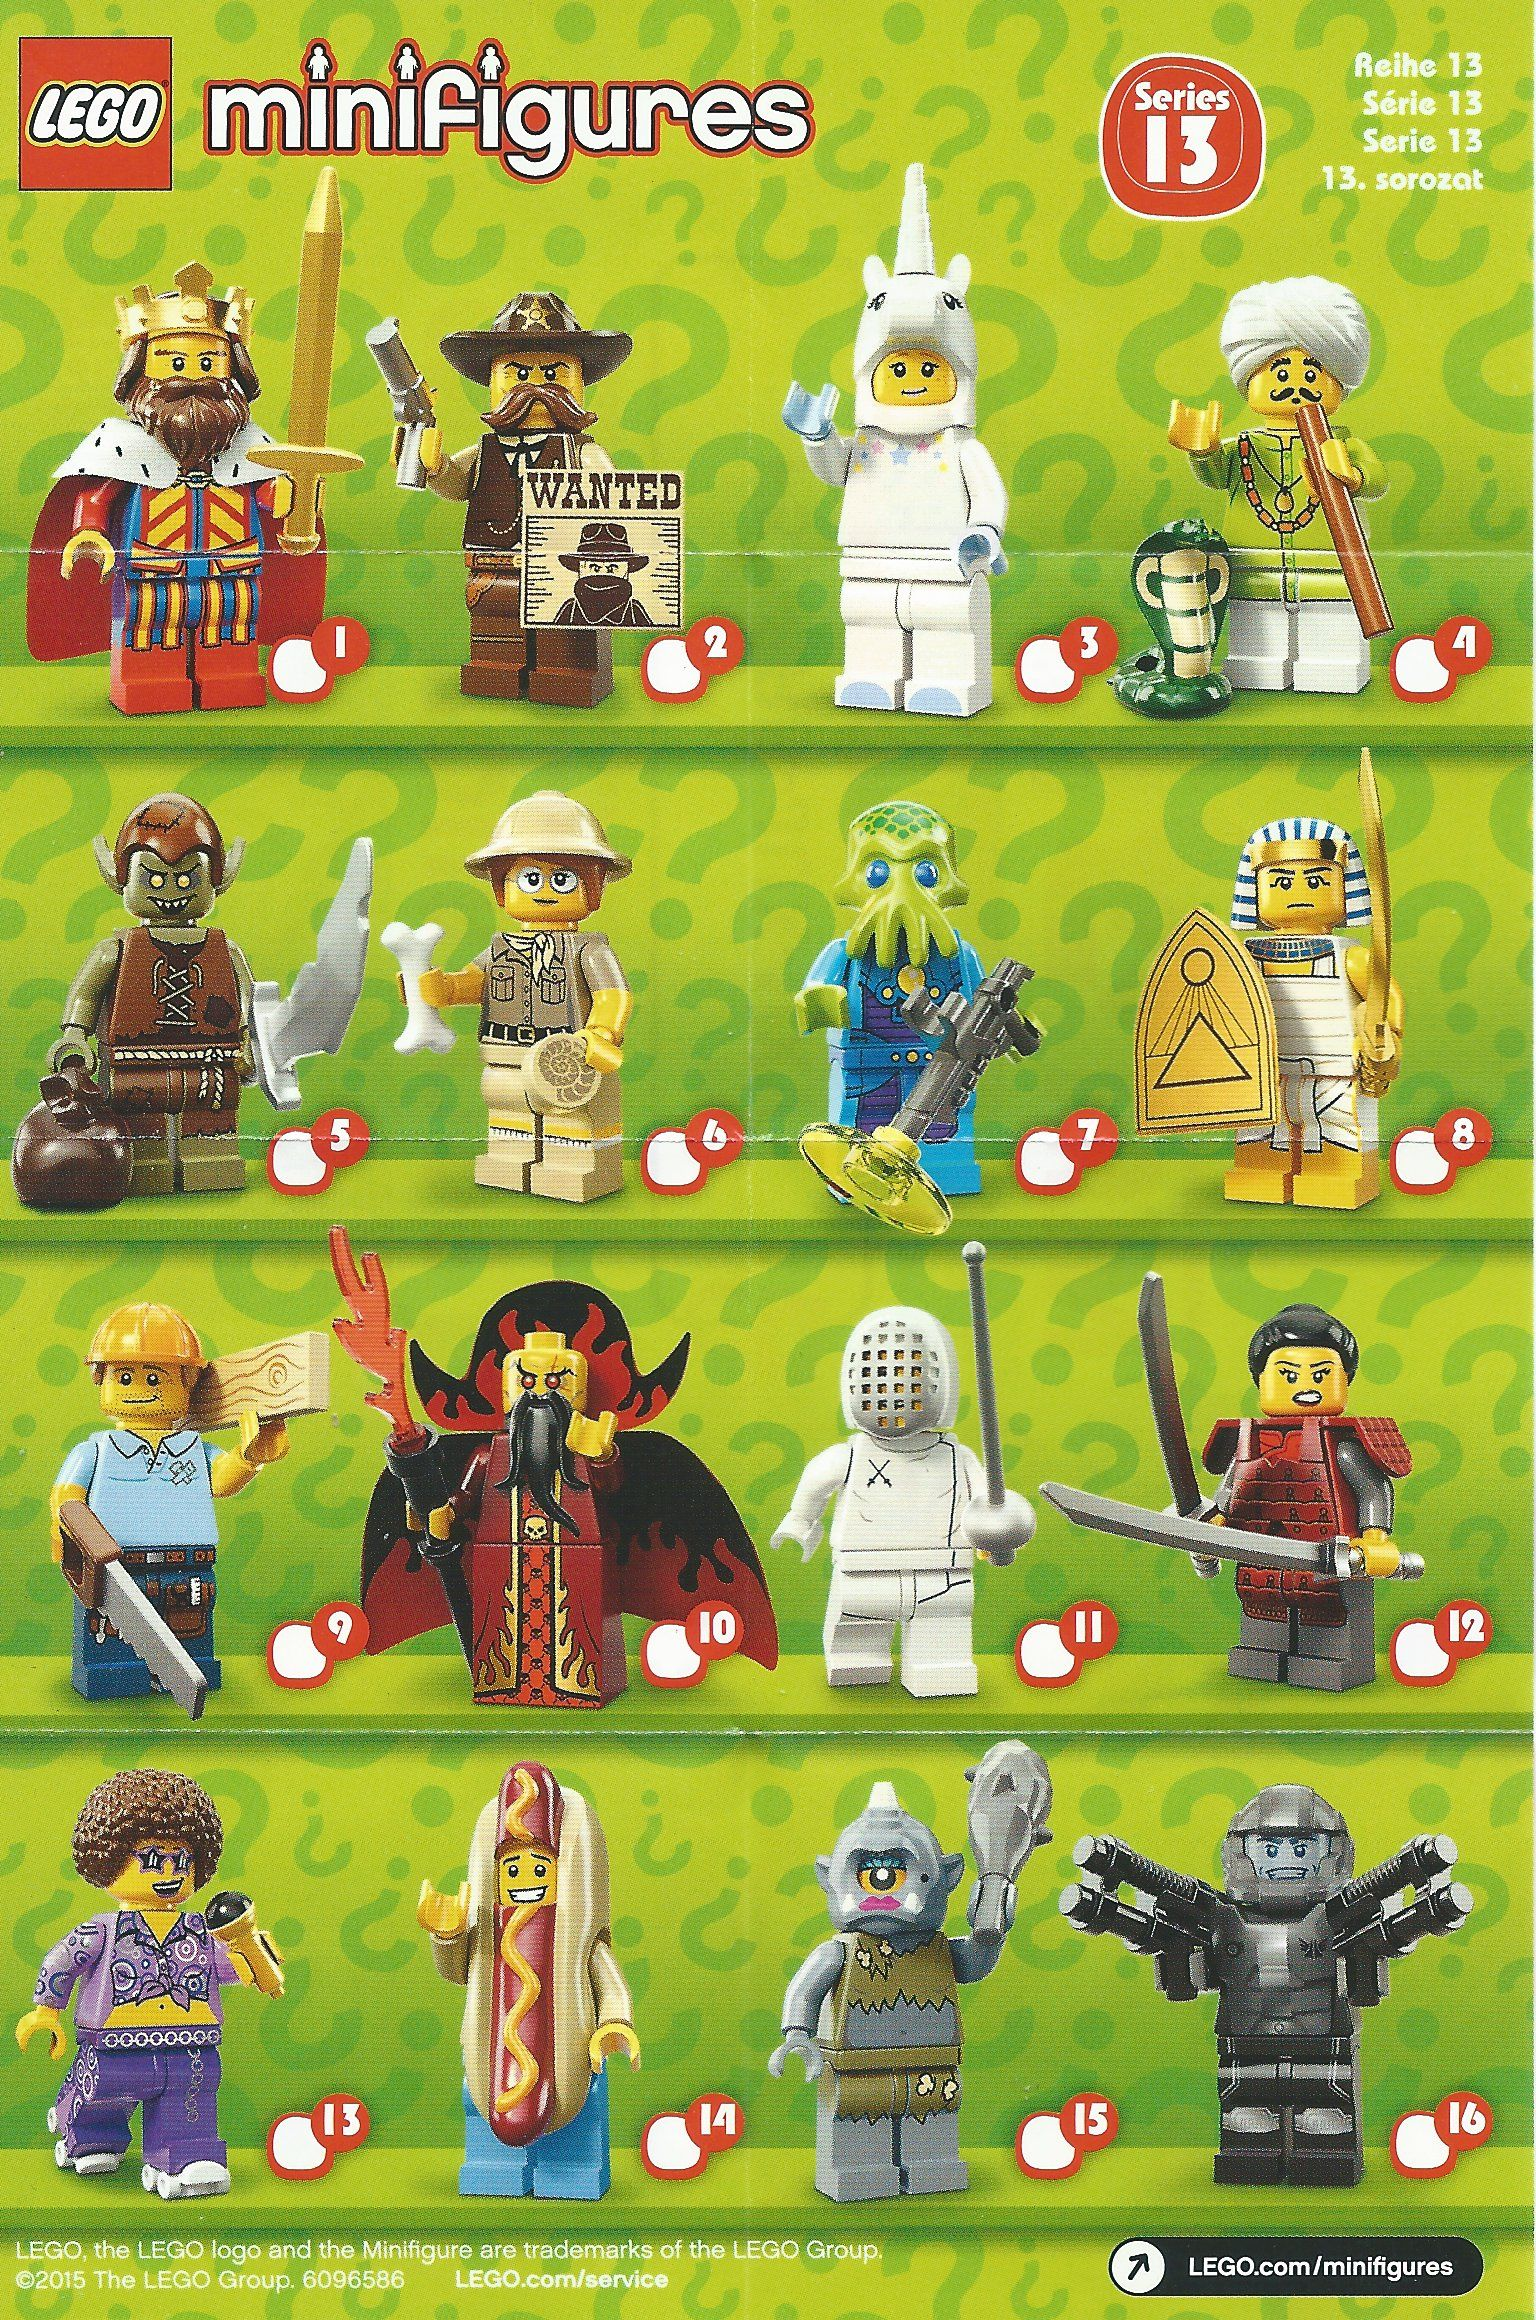 Series 13 minifigure packs are still priced at $5 ...